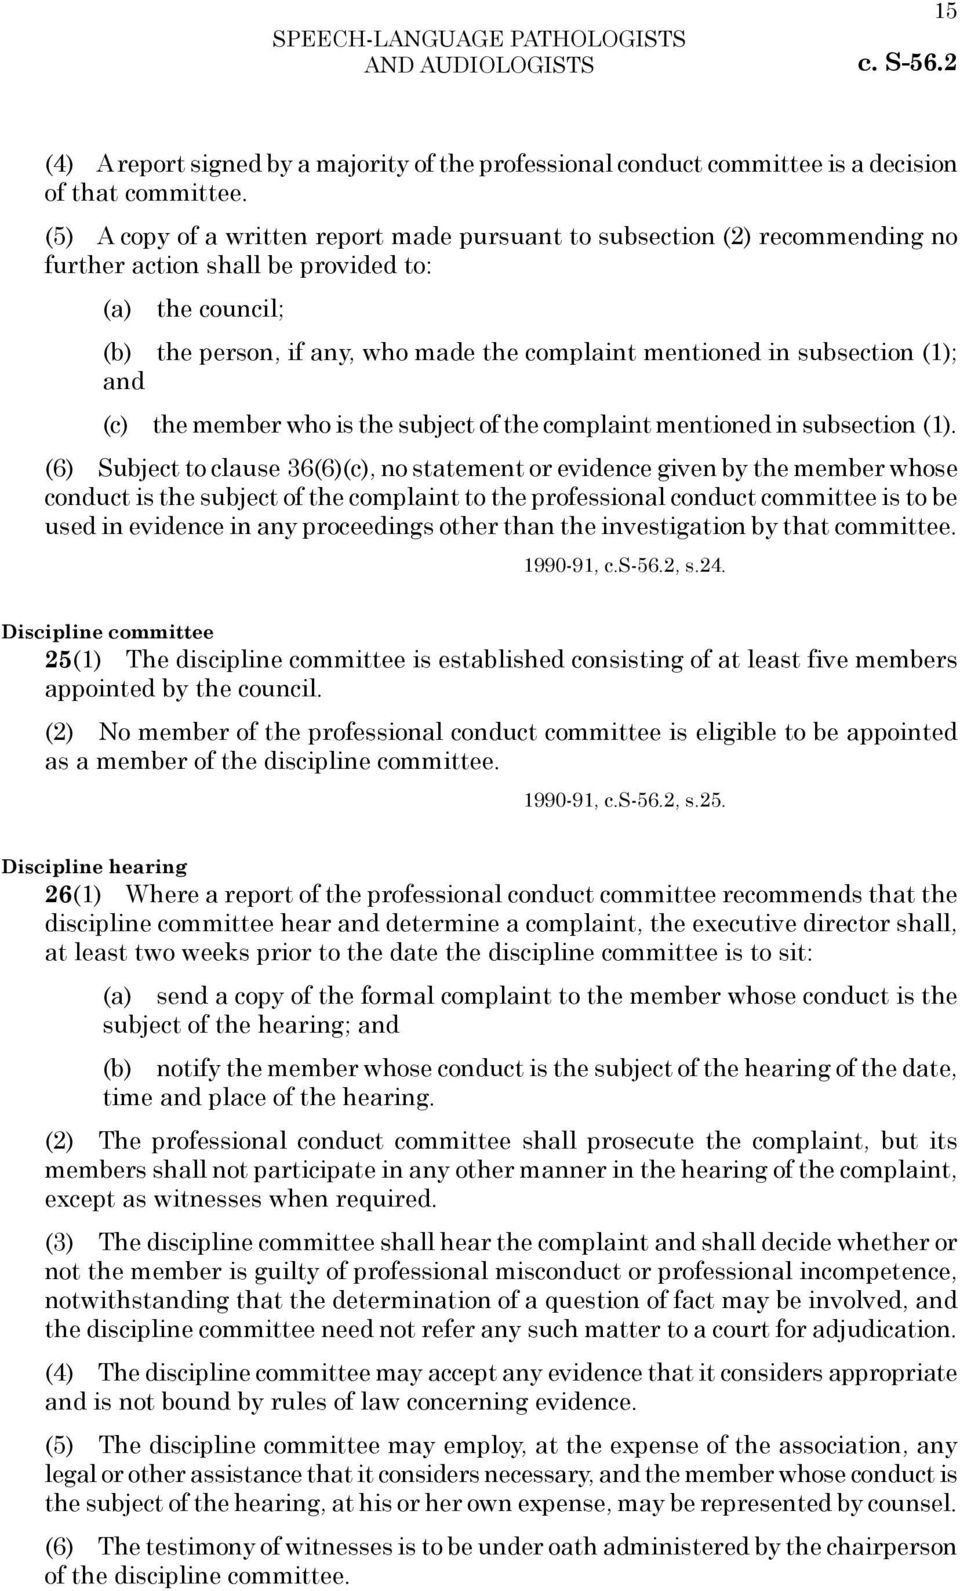 subsection (1); and (c) the member who is the subject of the complaint mentioned in subsection (1).